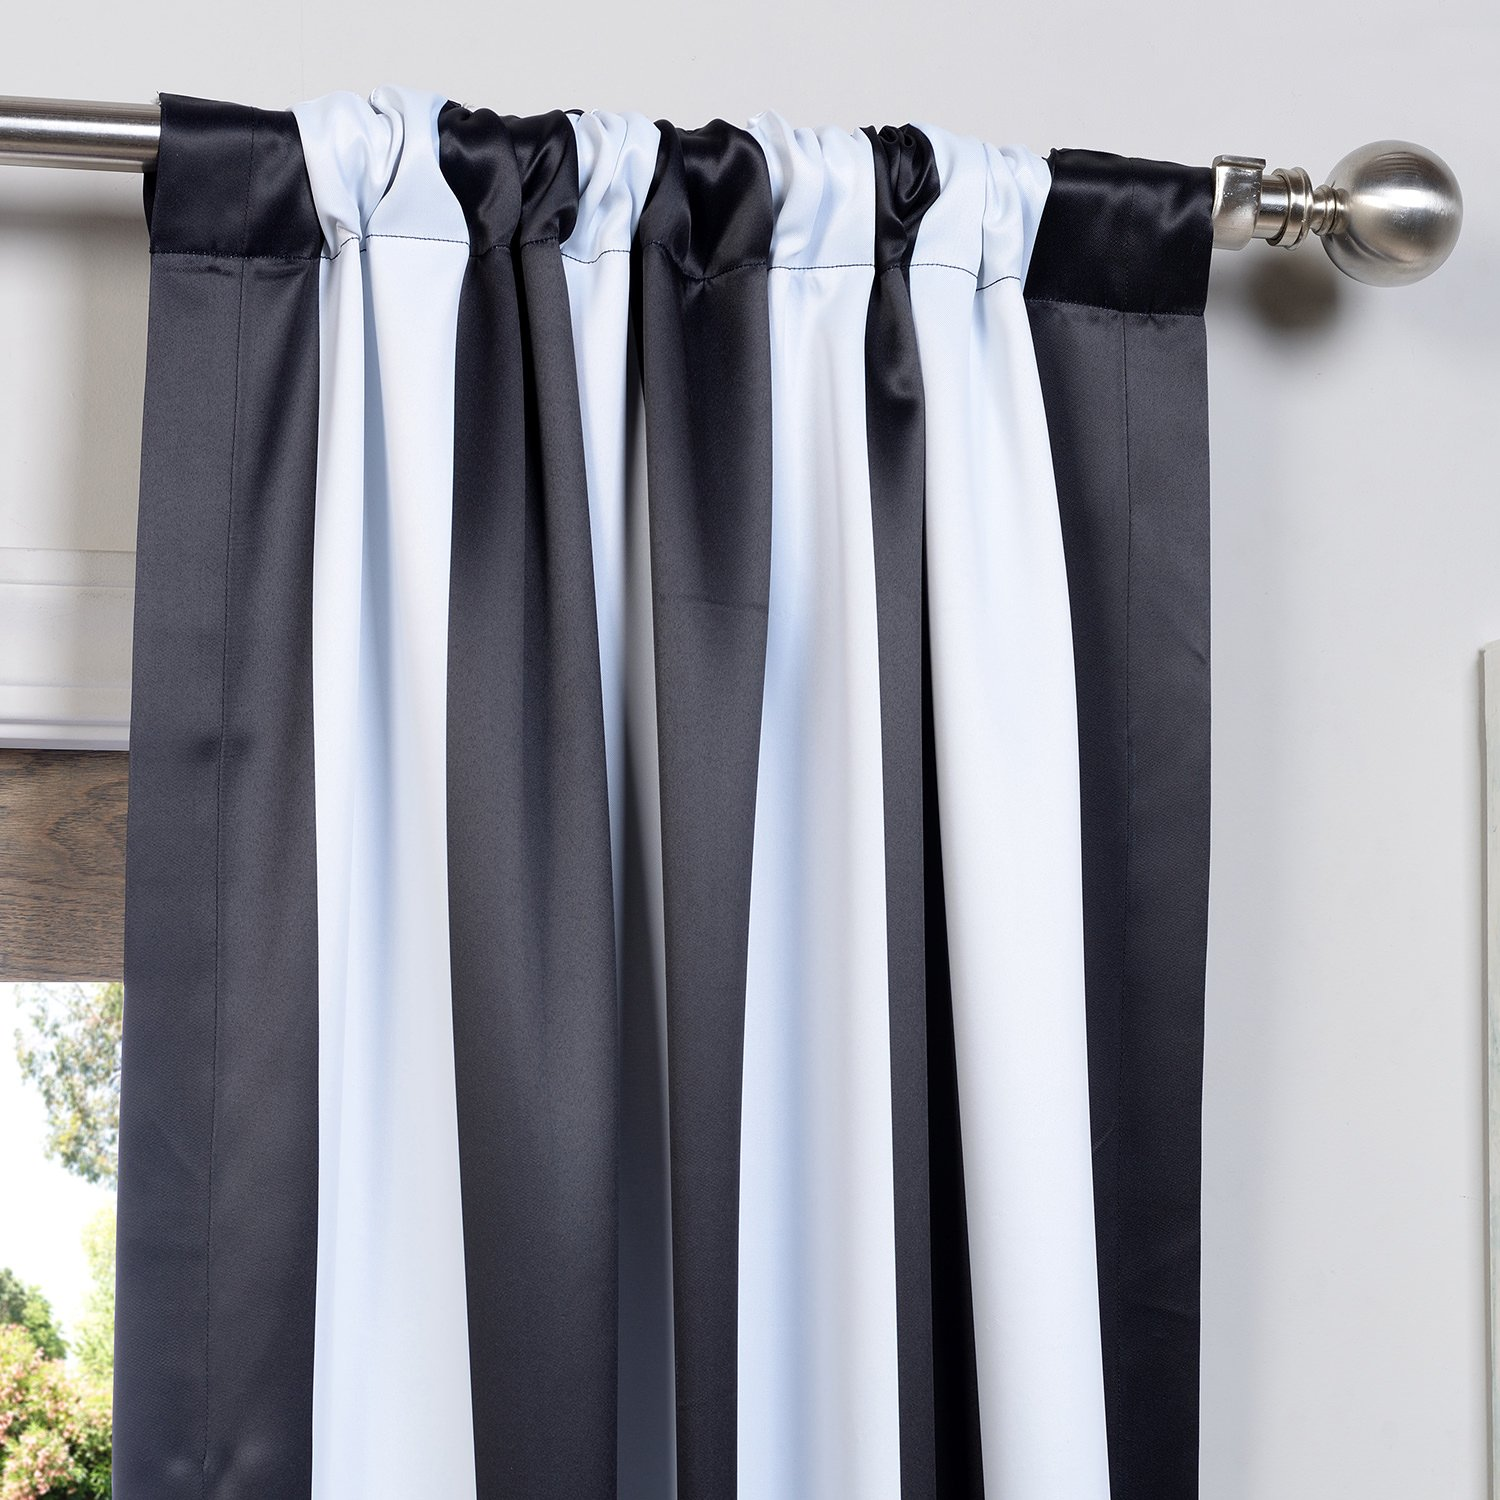 floral amp boch curtain curtains and shower navy striped blackout cream